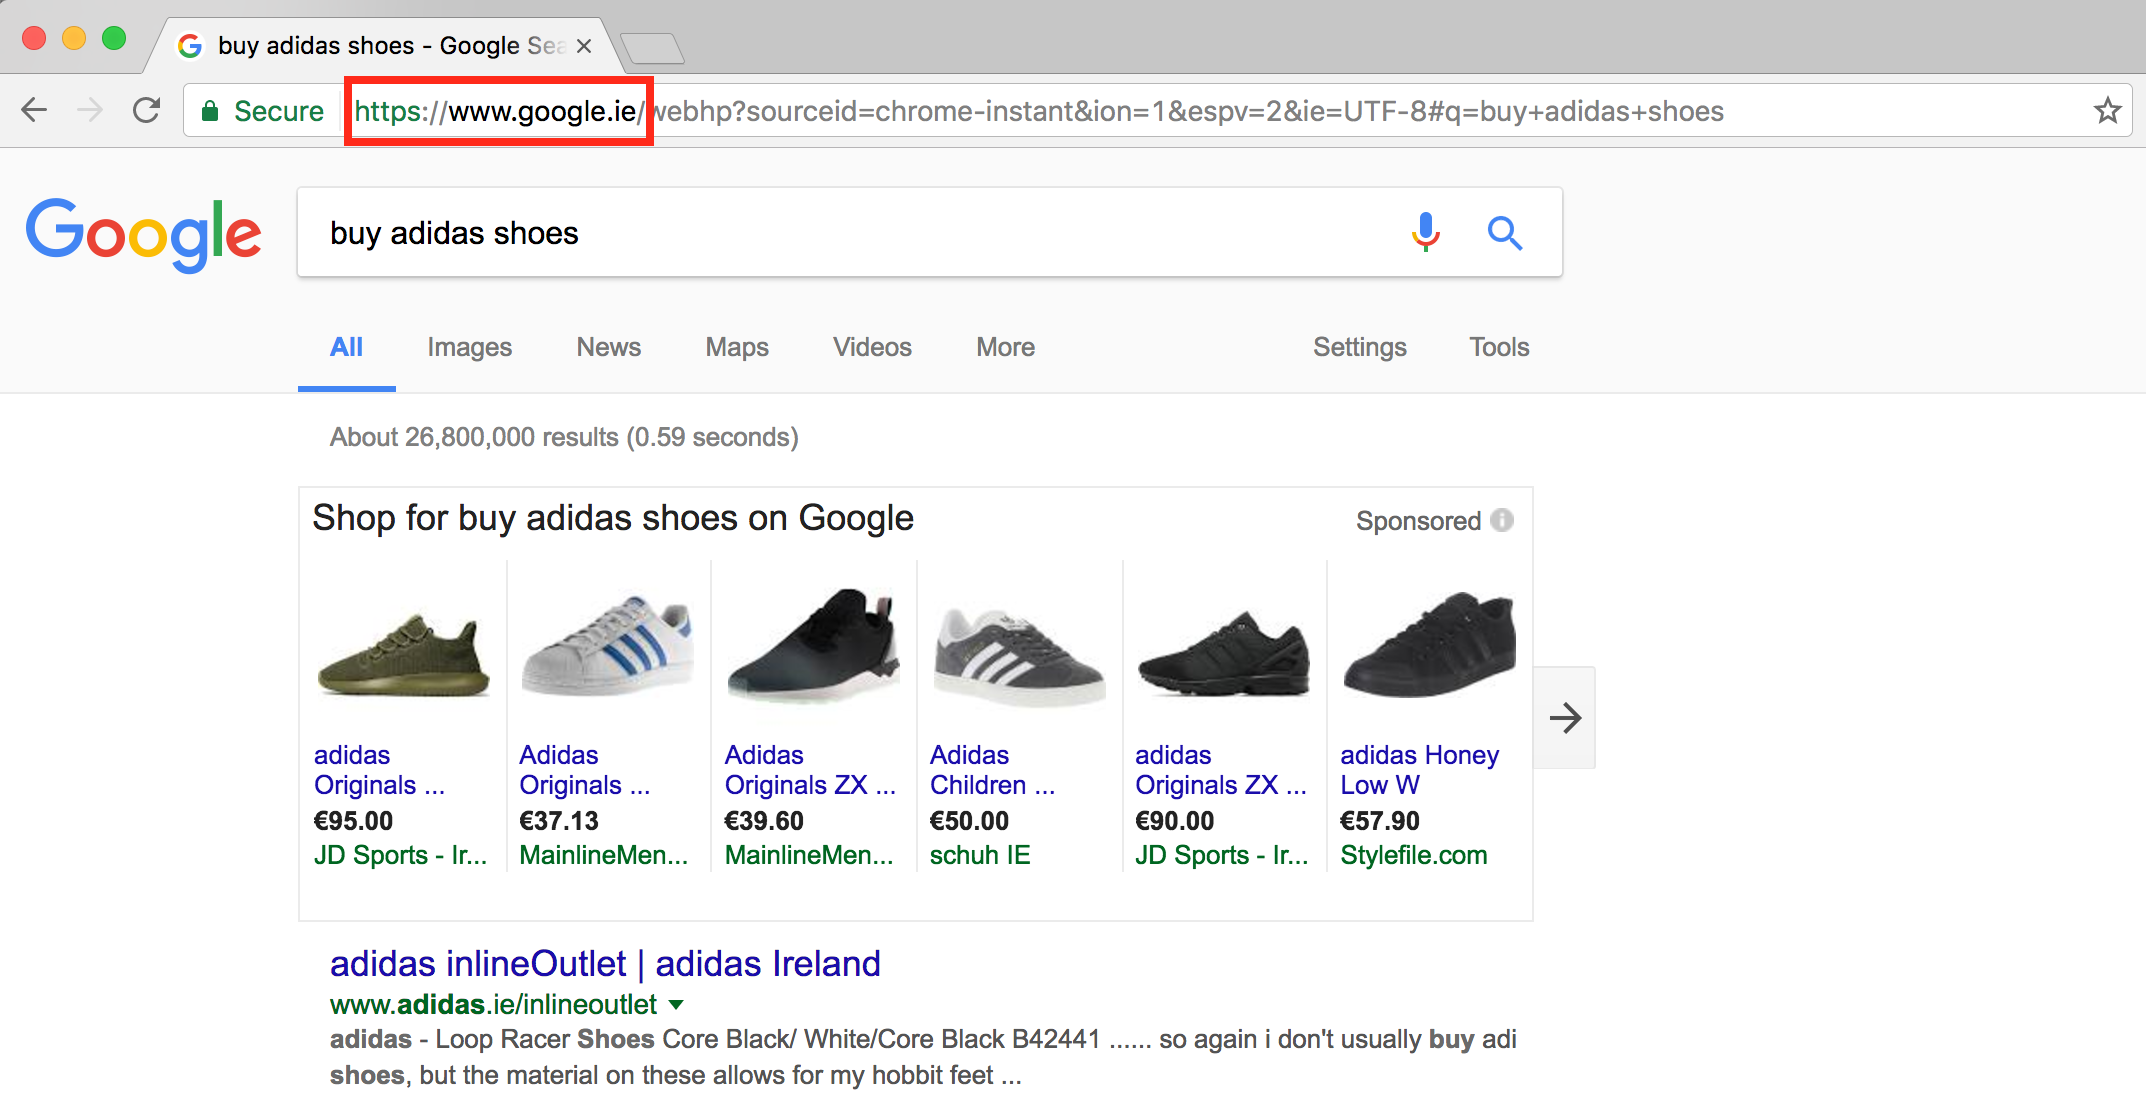 Google Will Add 11 New Google Shopping Countries In 2017